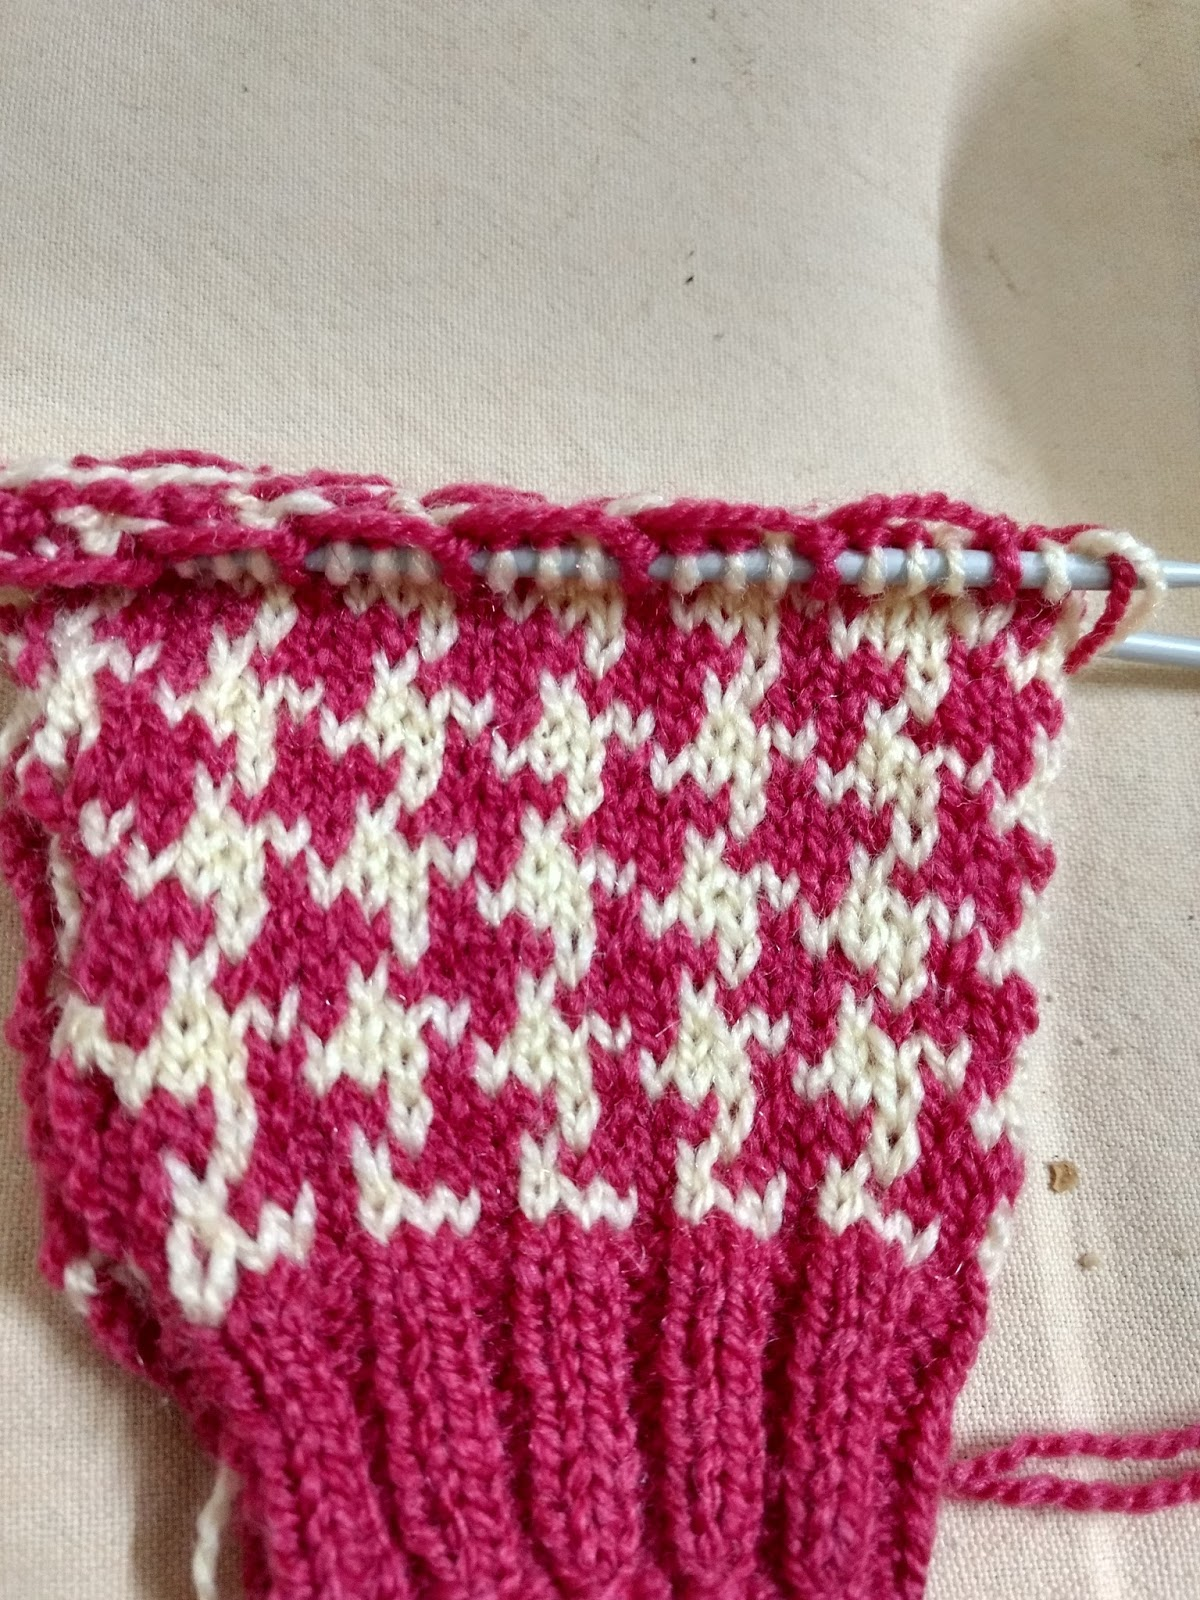 recreation: Houndstooth knitting pattern